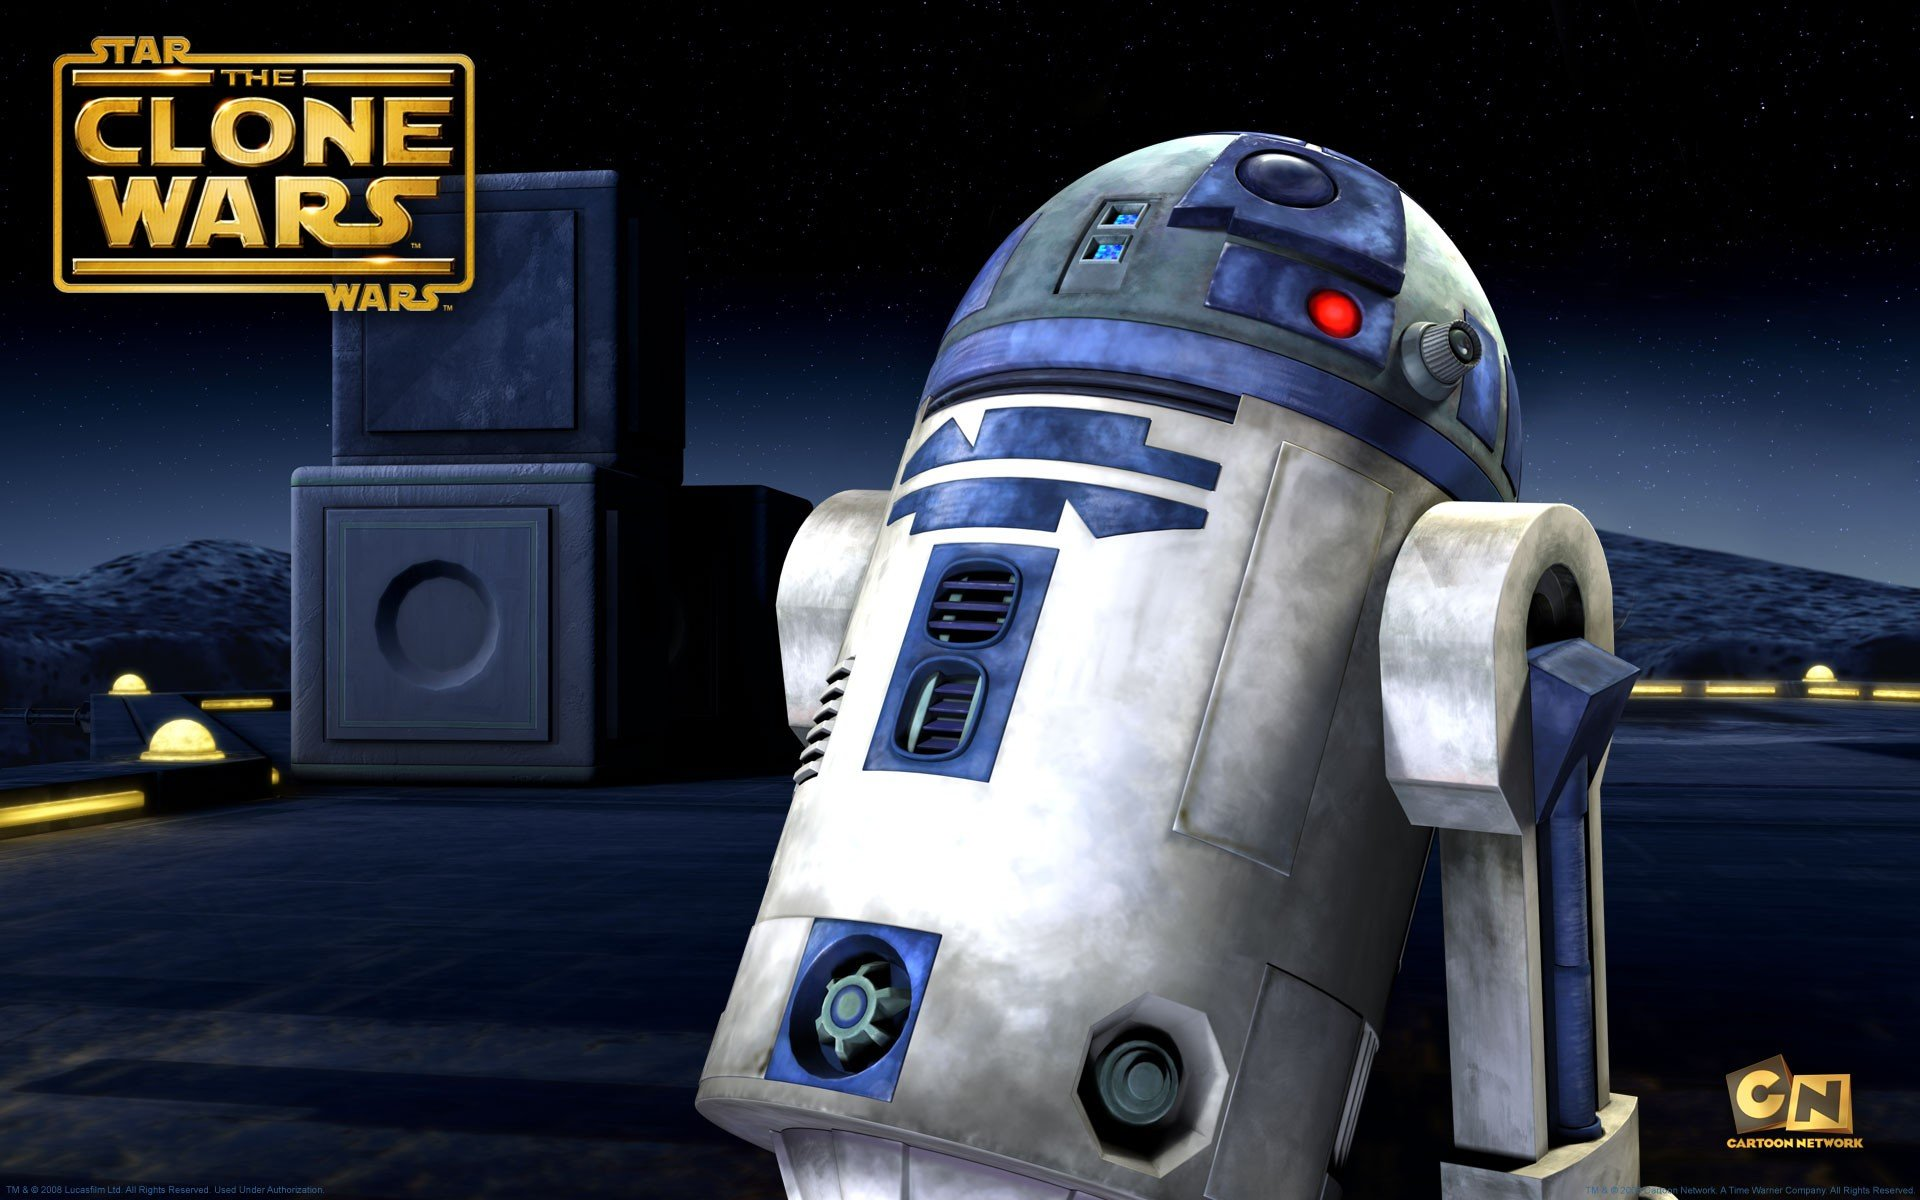 Star Wars The Clone Wars Wallpapers Hd For Desktop Backgrounds